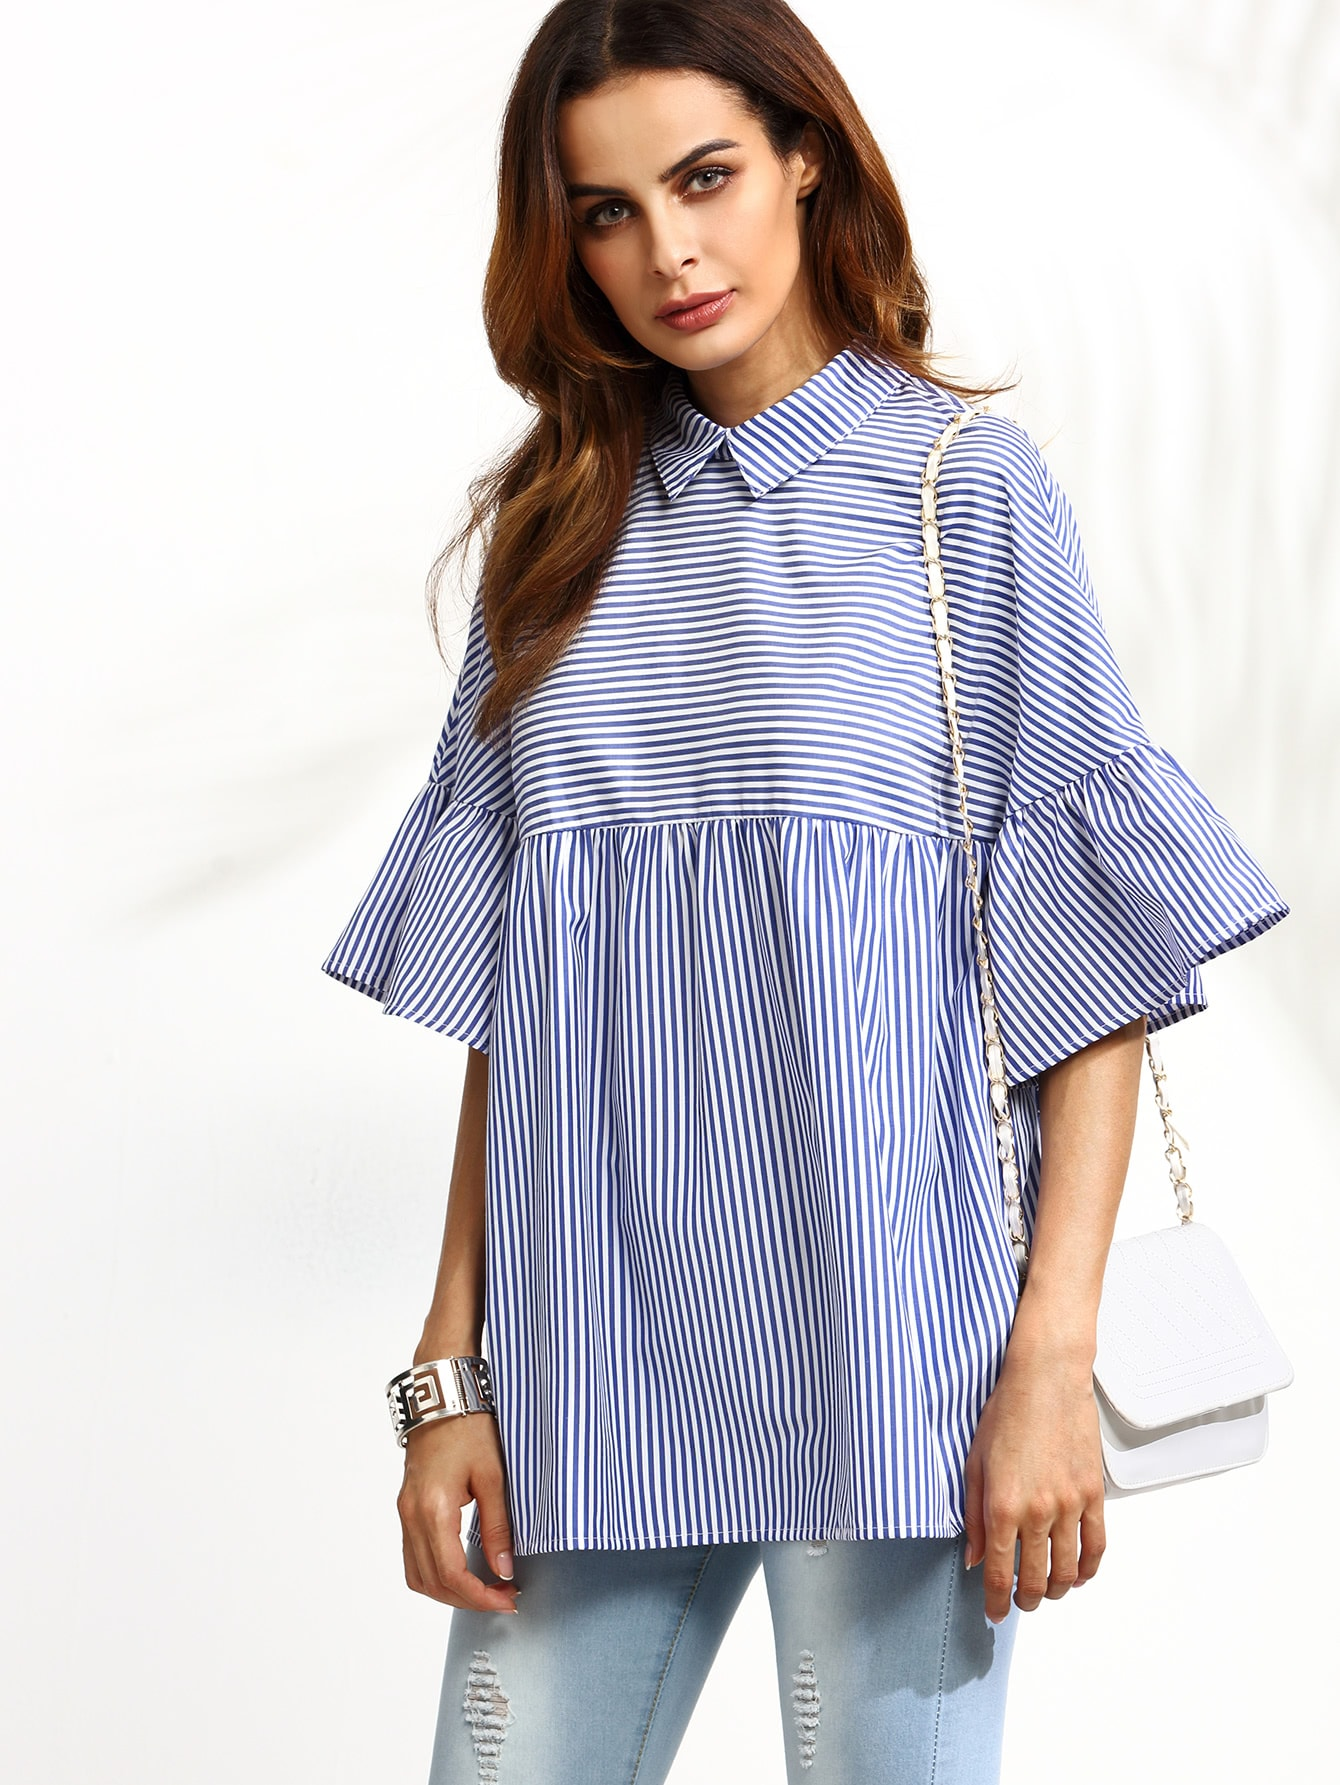 Pinstriped Frill Sleeve Babydoll Blouse blouse160906503